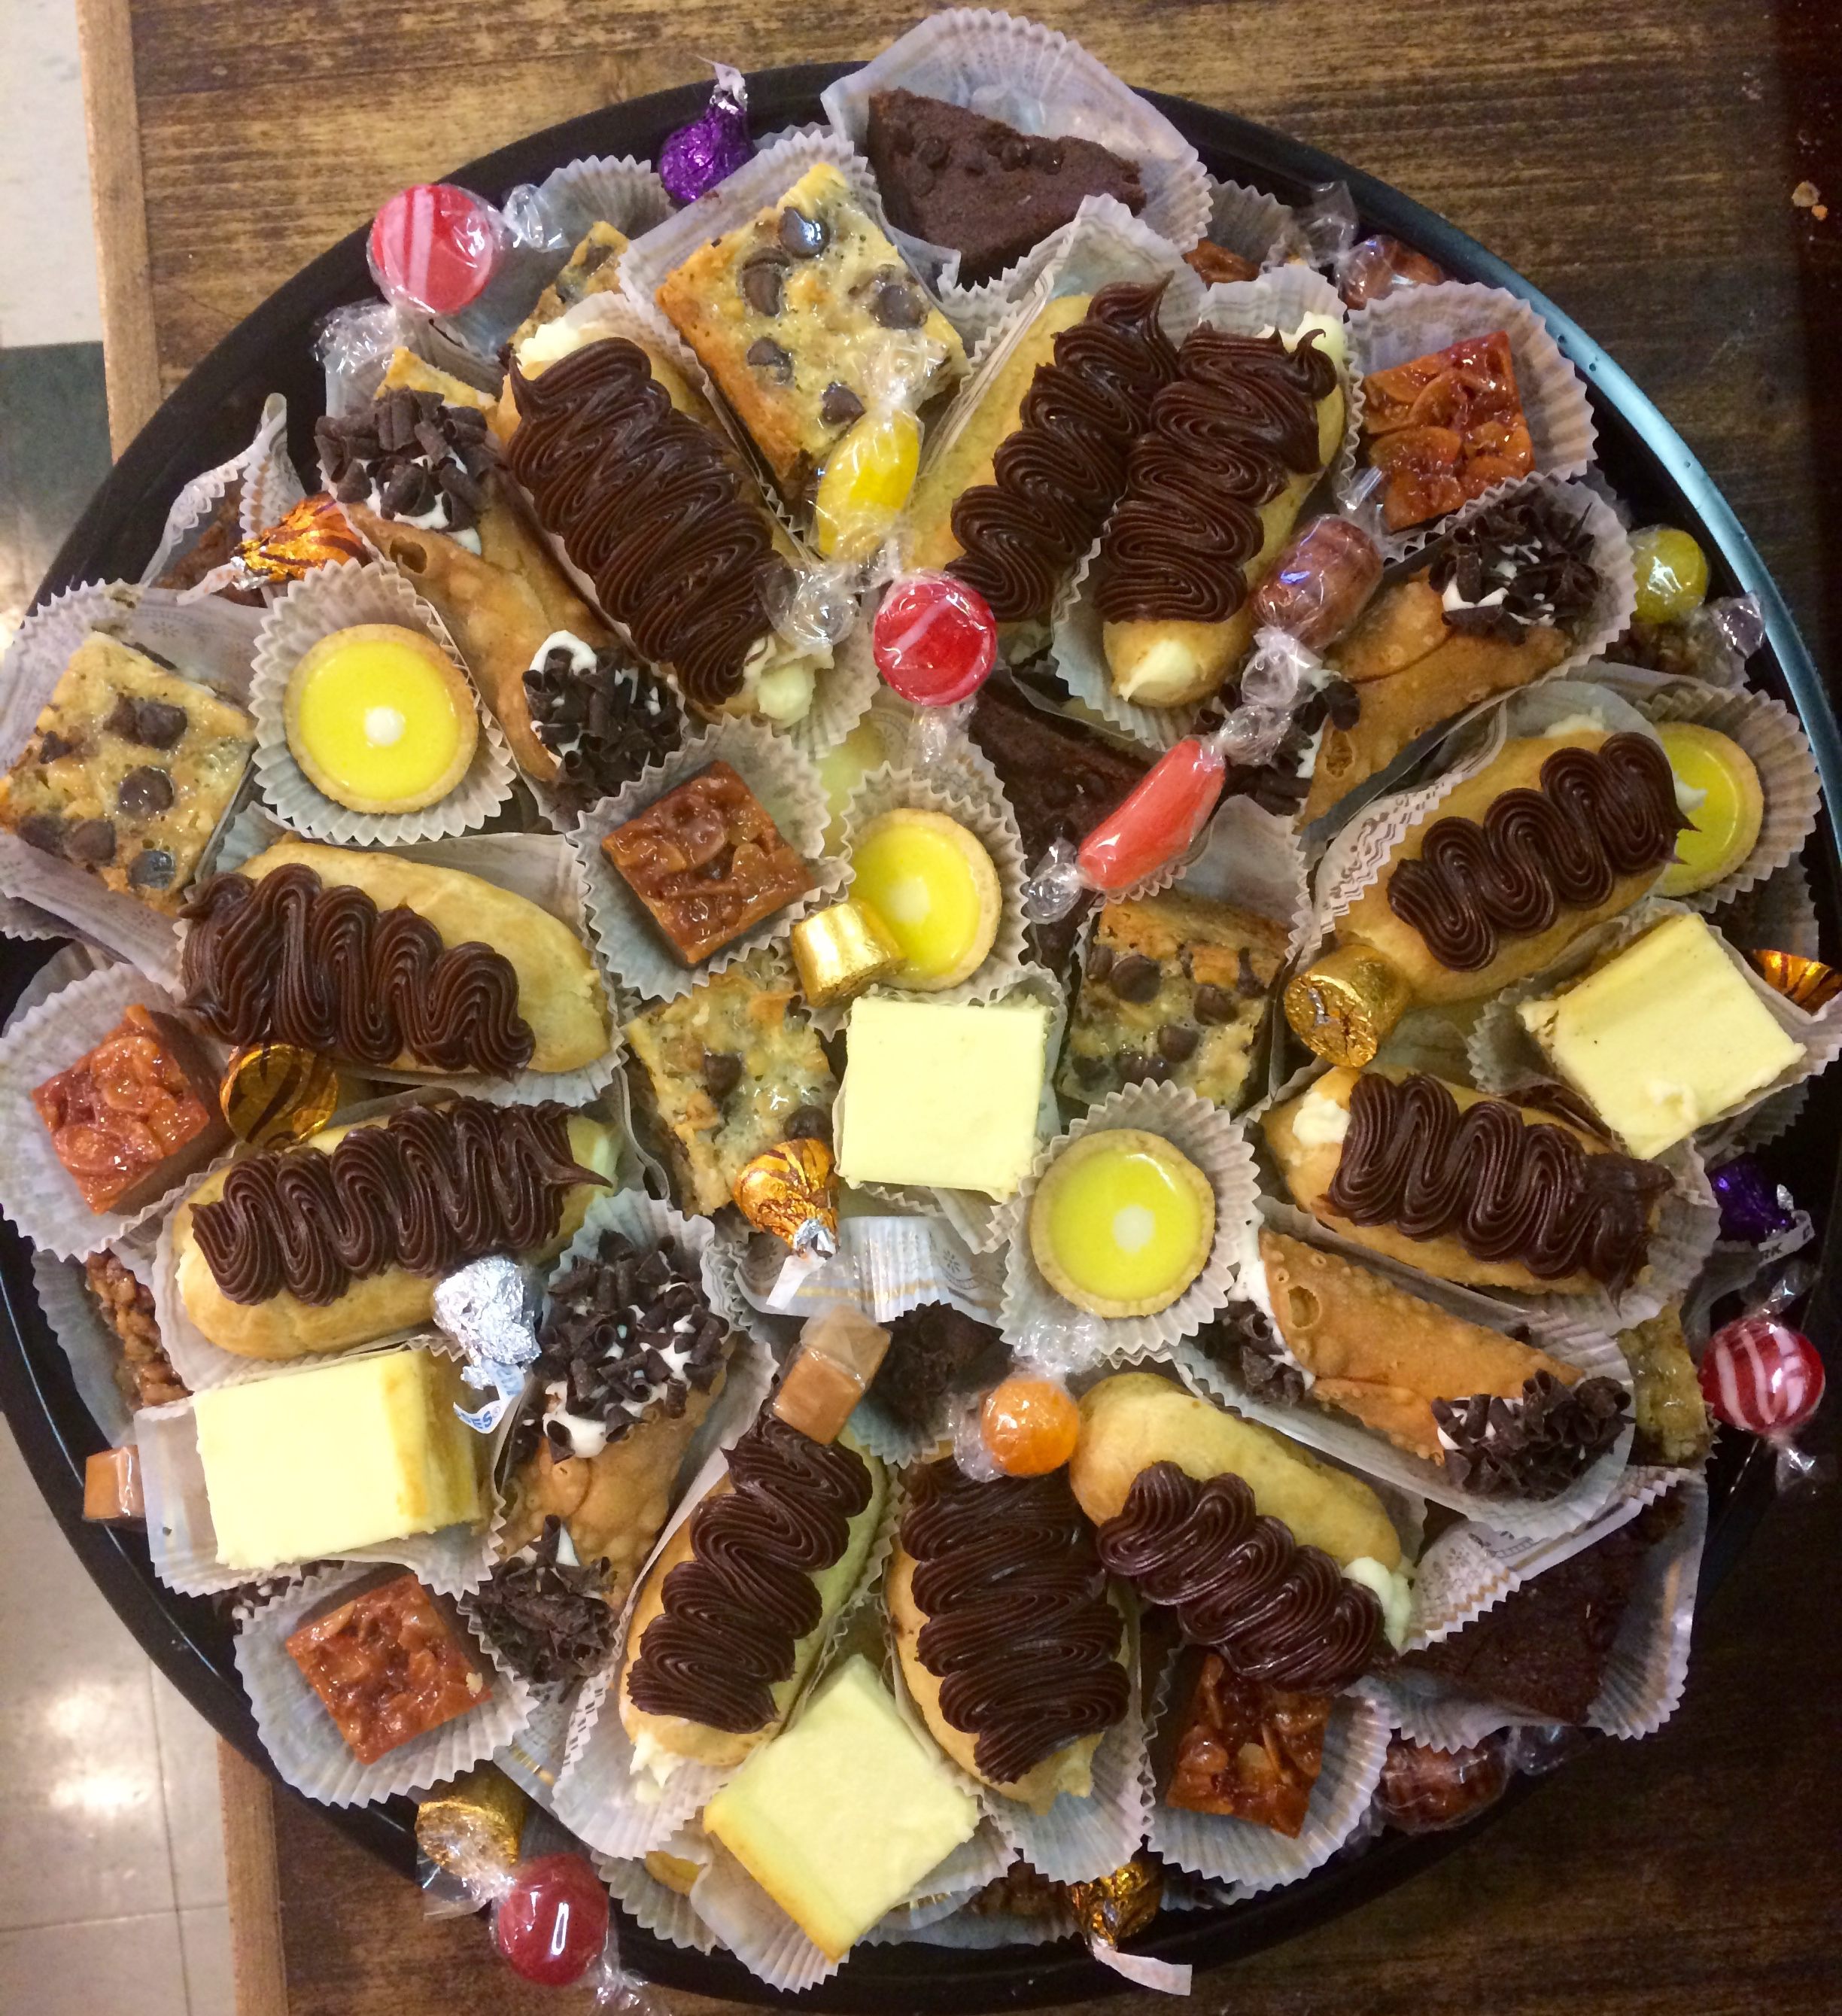 Fancy Sweet Tray - This beautiful tray includes mini cannolis, mini eclairs, brownie diamonds, cheesecake squares, hello dollies, raspberry crumble bars, lemon tarts and small chocolate delightsSmall ~ Serves 15 (40 pieces) ~ $51.50Large ~ Serves 30 (80 pieces) ~ $99.00